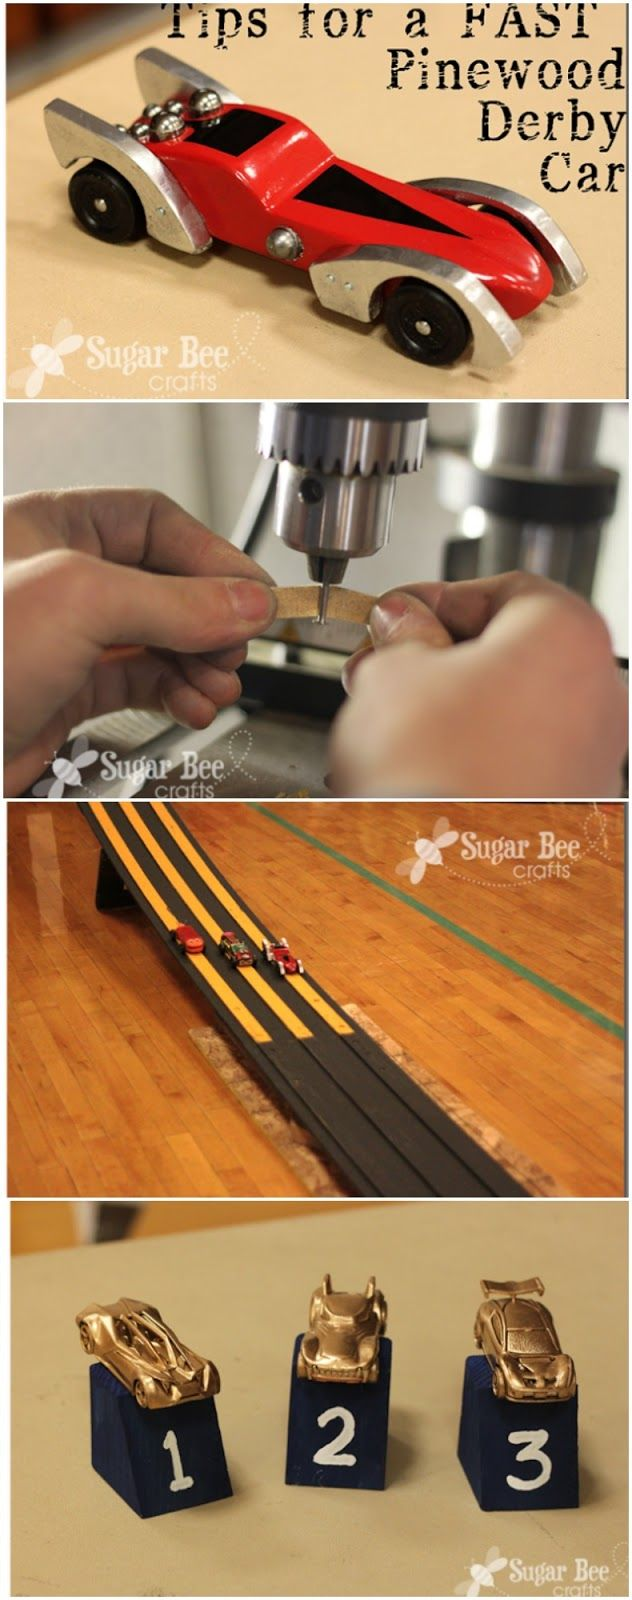 Tips for a FAST Pinewood Derby Car for Cub Scouts - - Sugar Bee Crafts